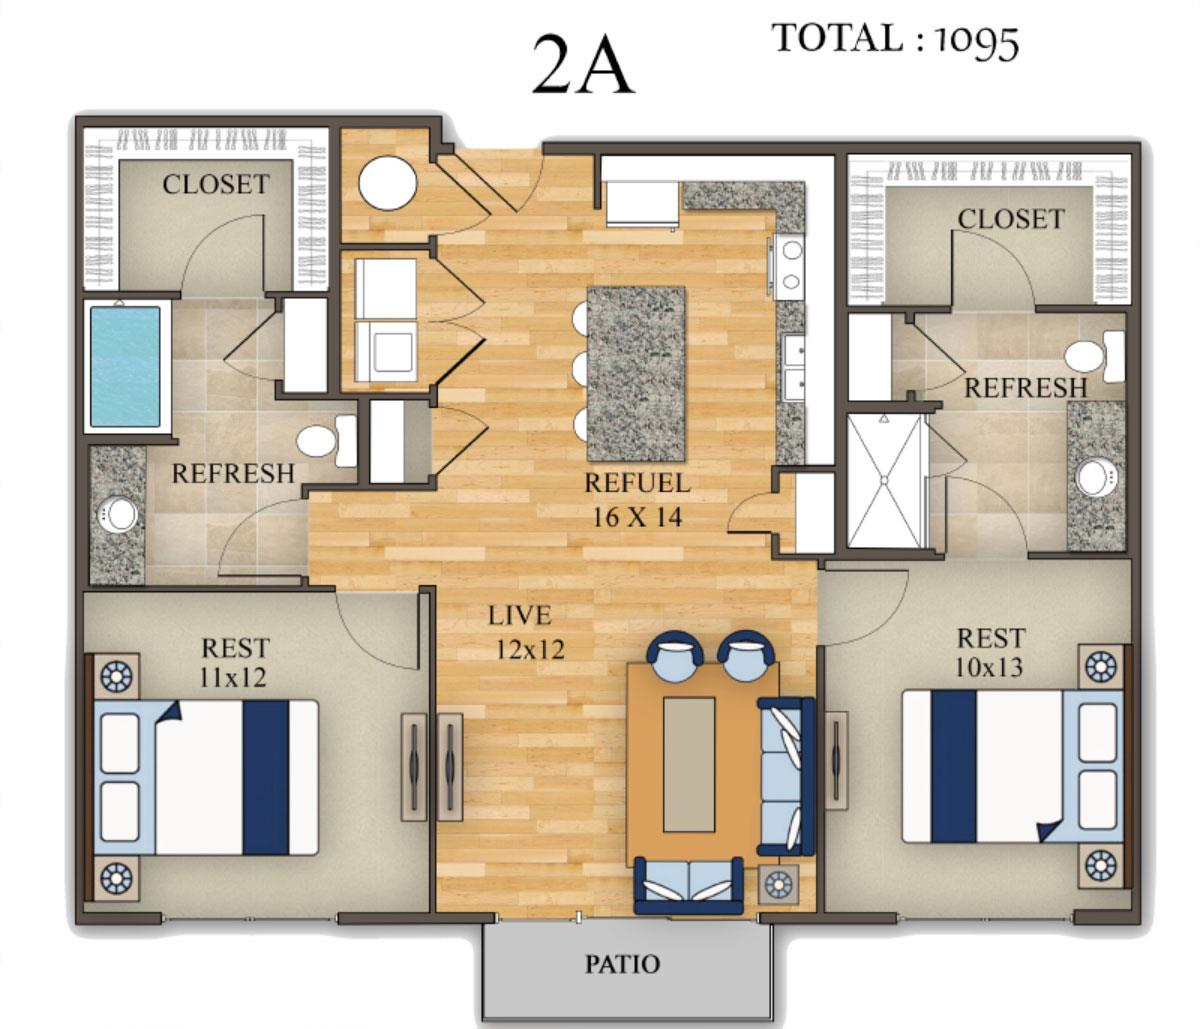 1,095 sq. ft. floor plan